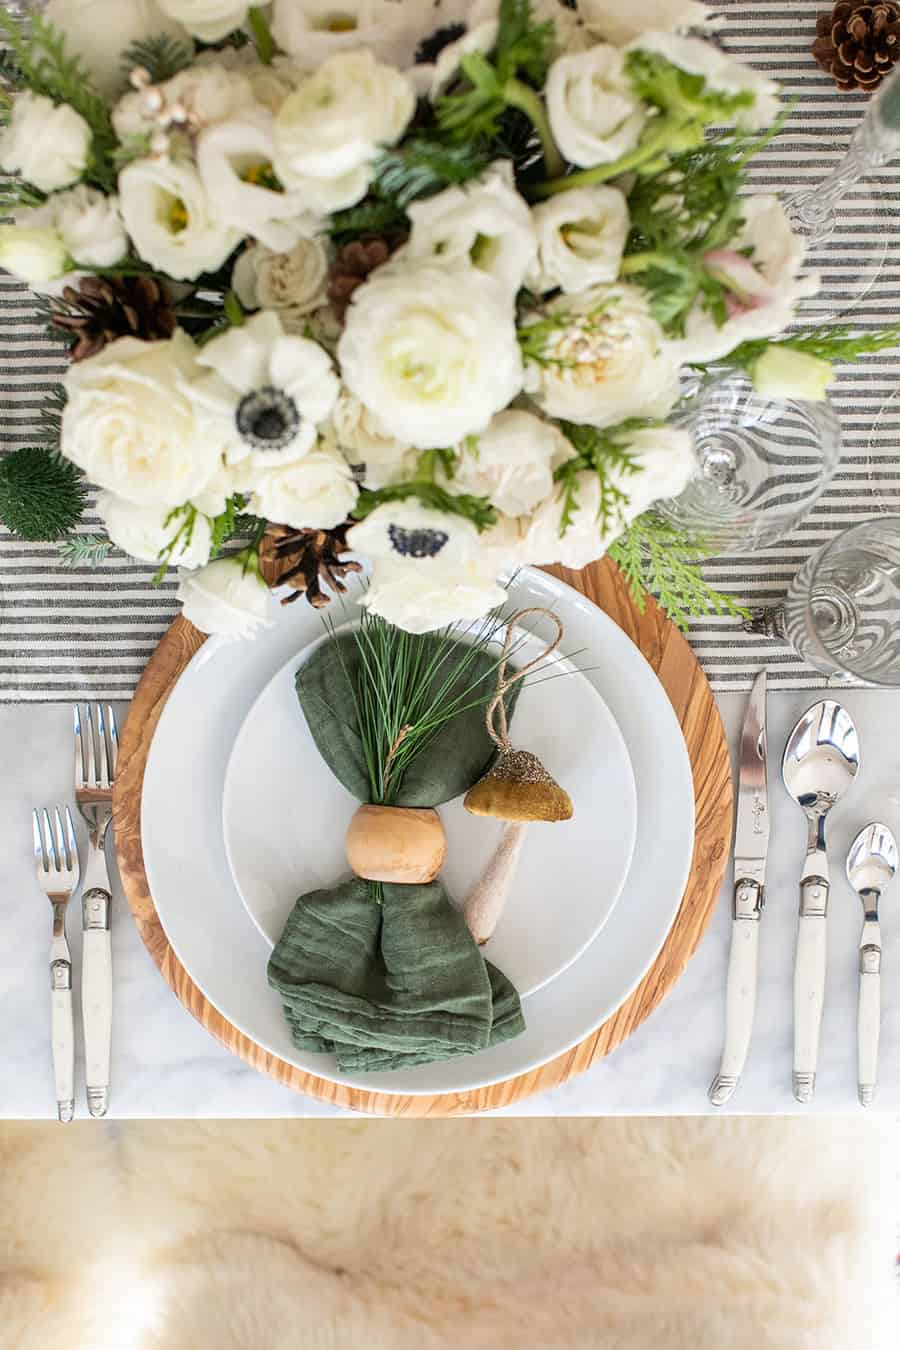 Christmas table setting, green napkin, olive wood charger, white plates from Williams Sonoma.